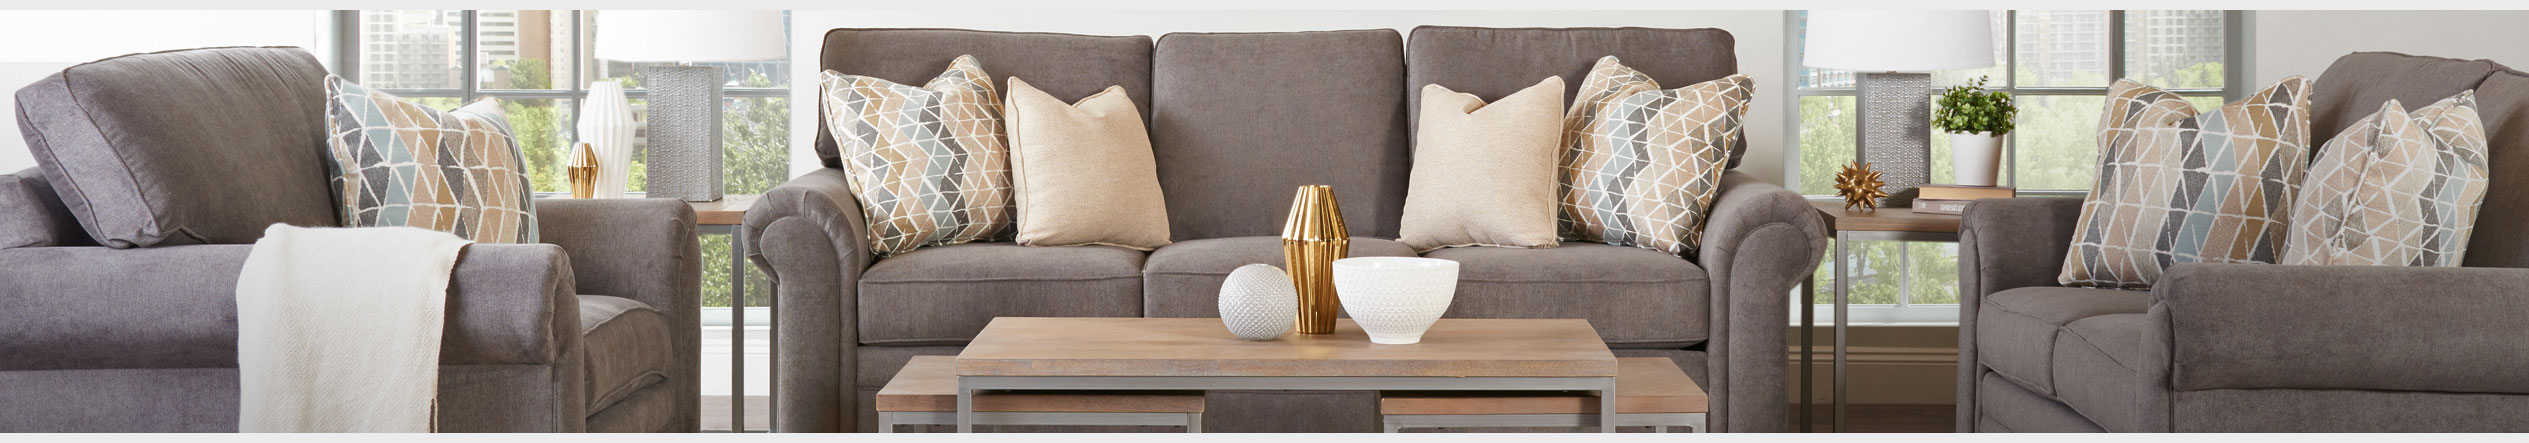 Living Room furniture for sale at Jordan's Furniture stores in MA, NH and RI